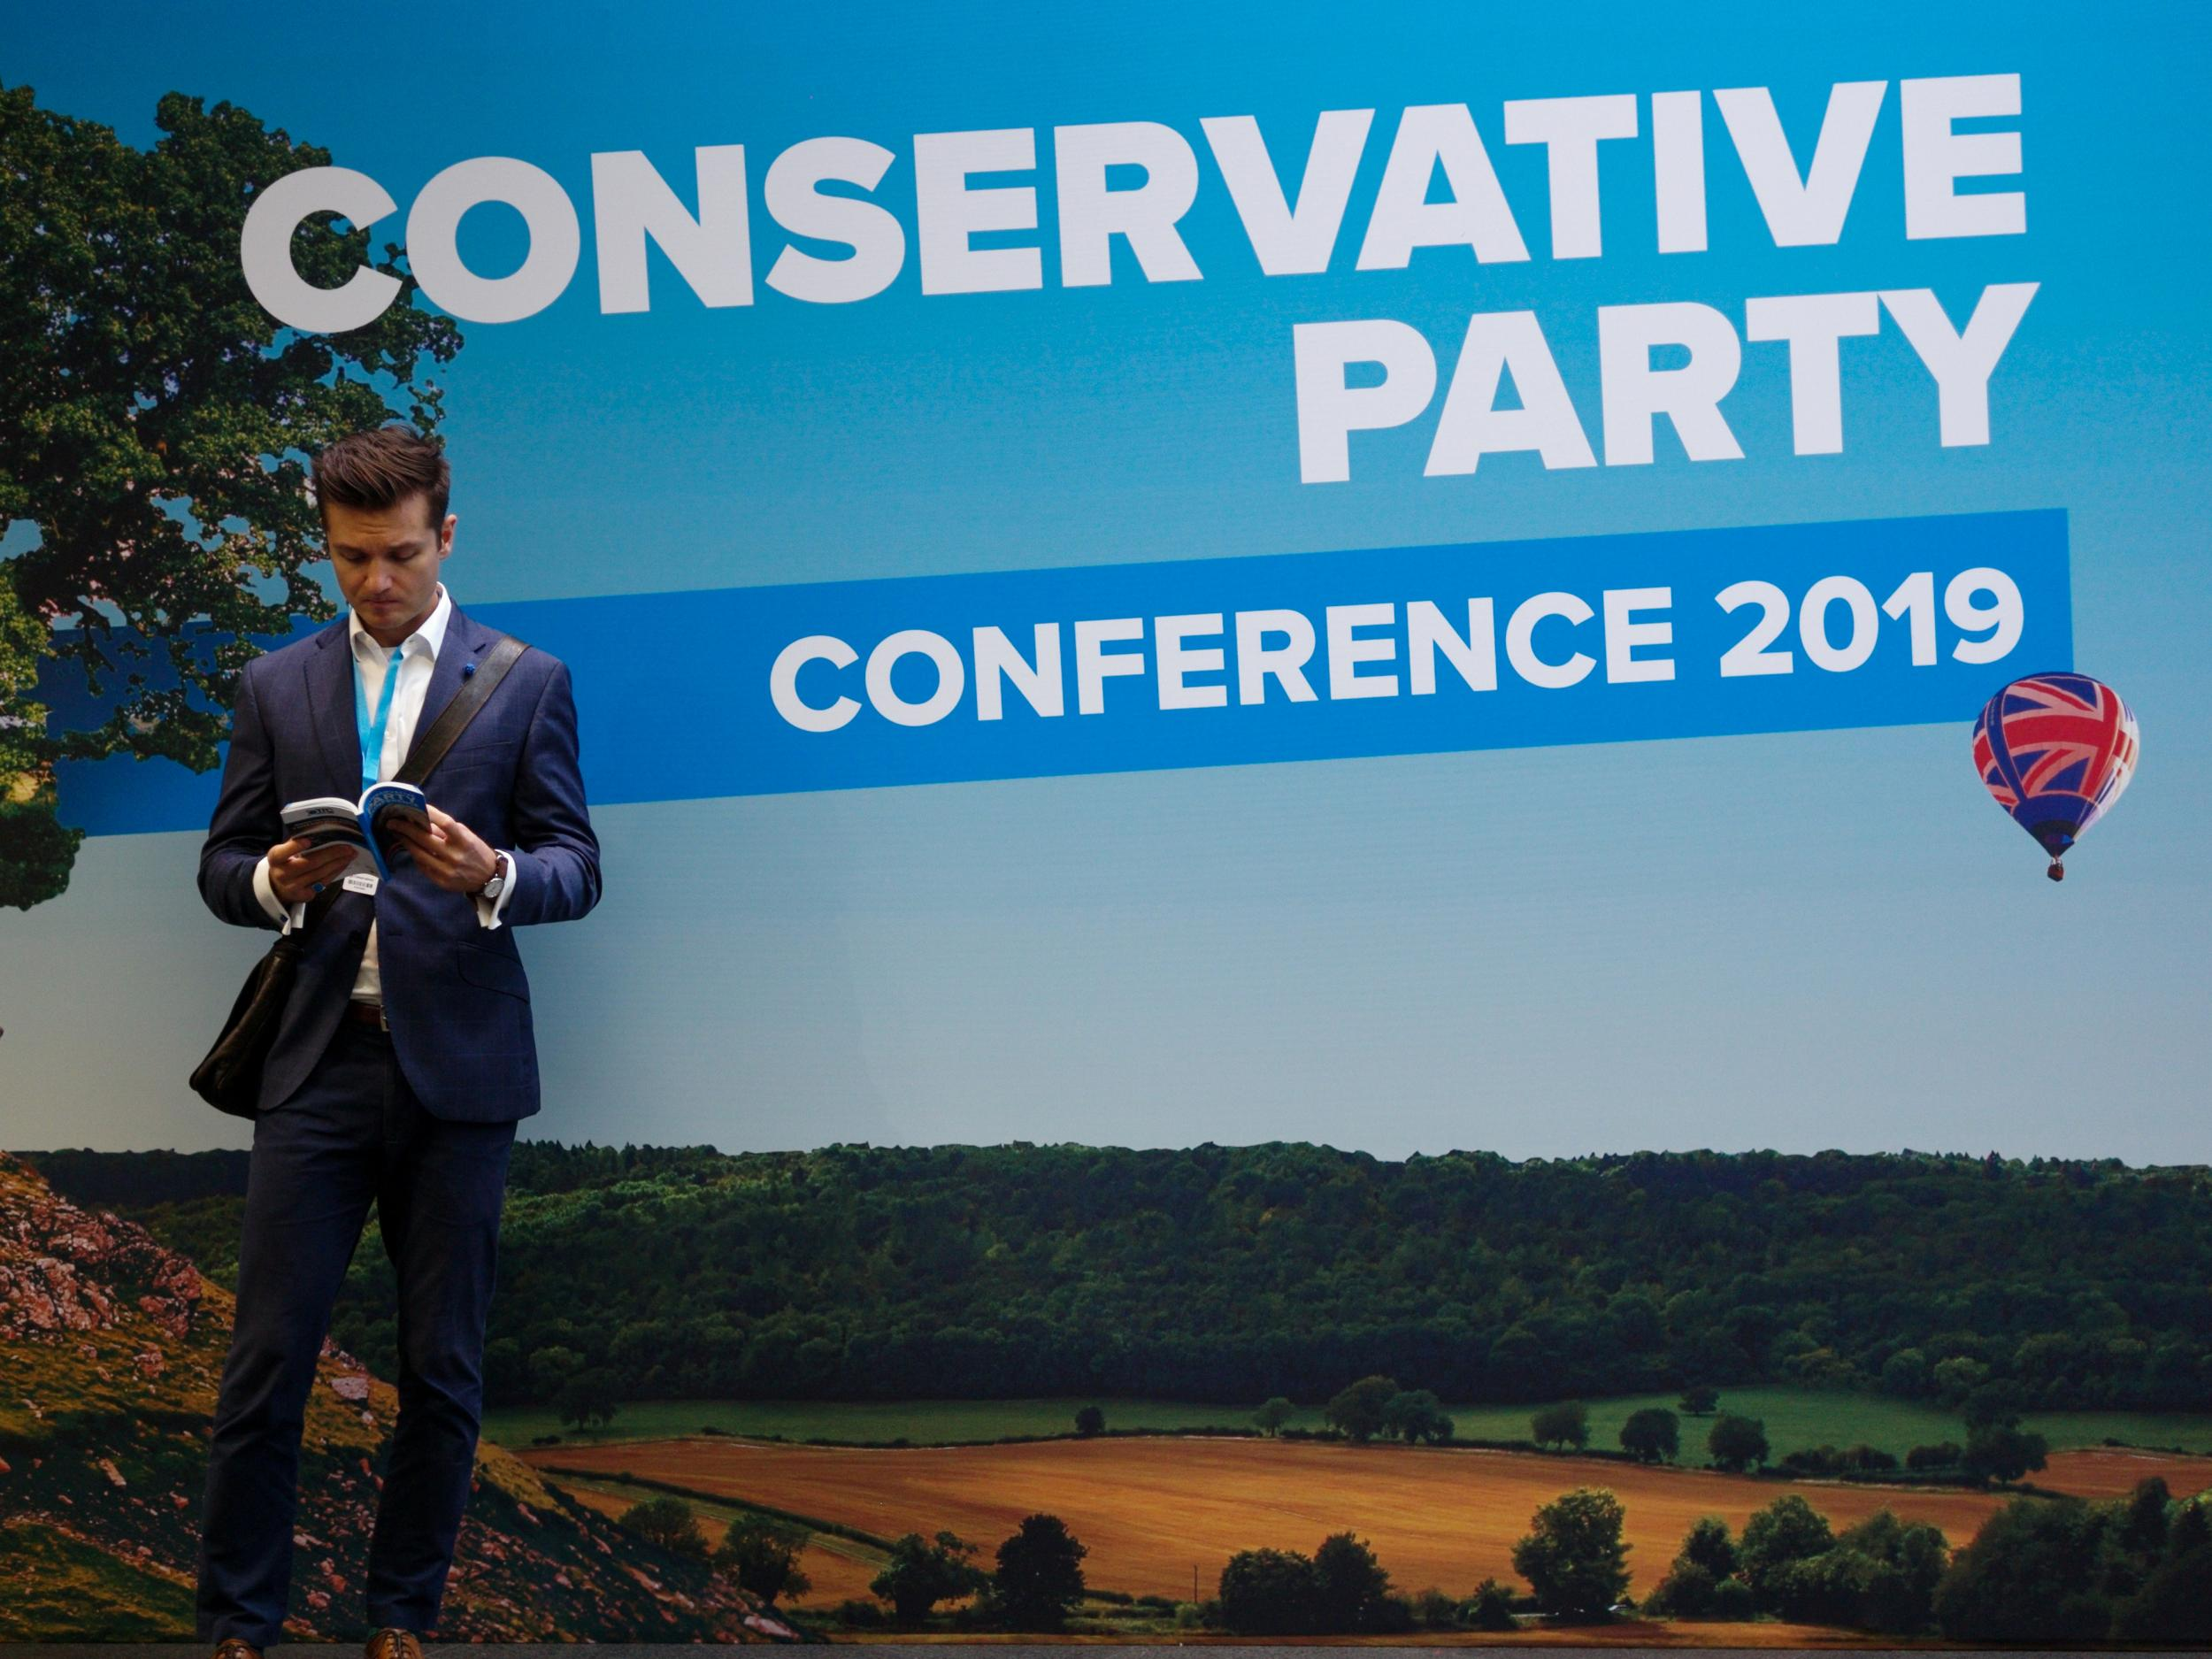 Tory branch apologises for accidentally saying people with mental health problems 'should be neutered'